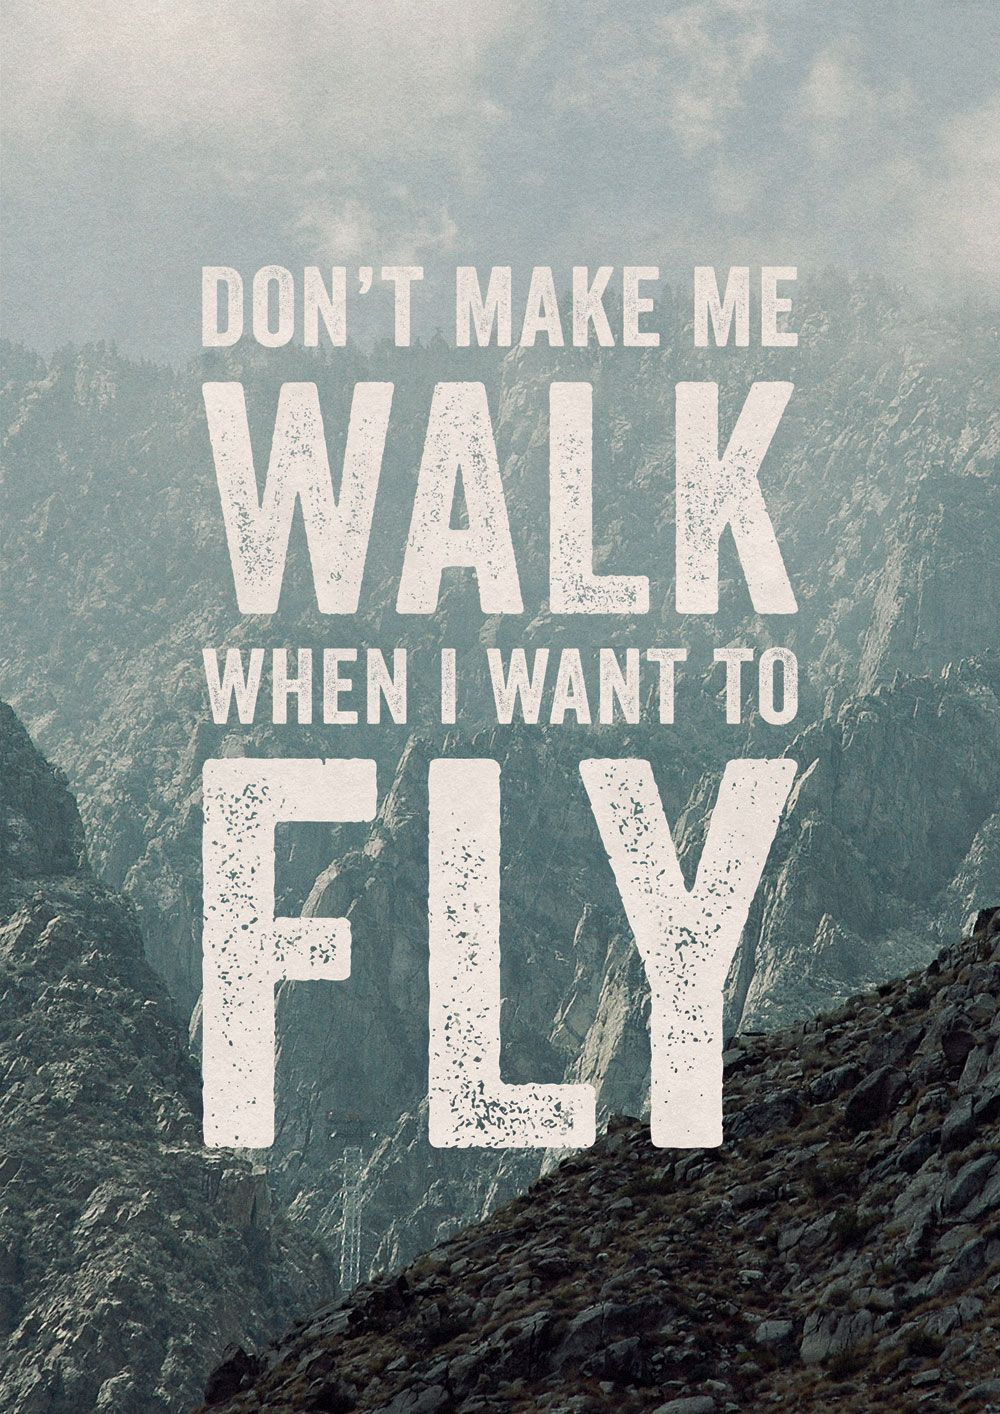 Dont make me walk when i want to fly by oliver shilling